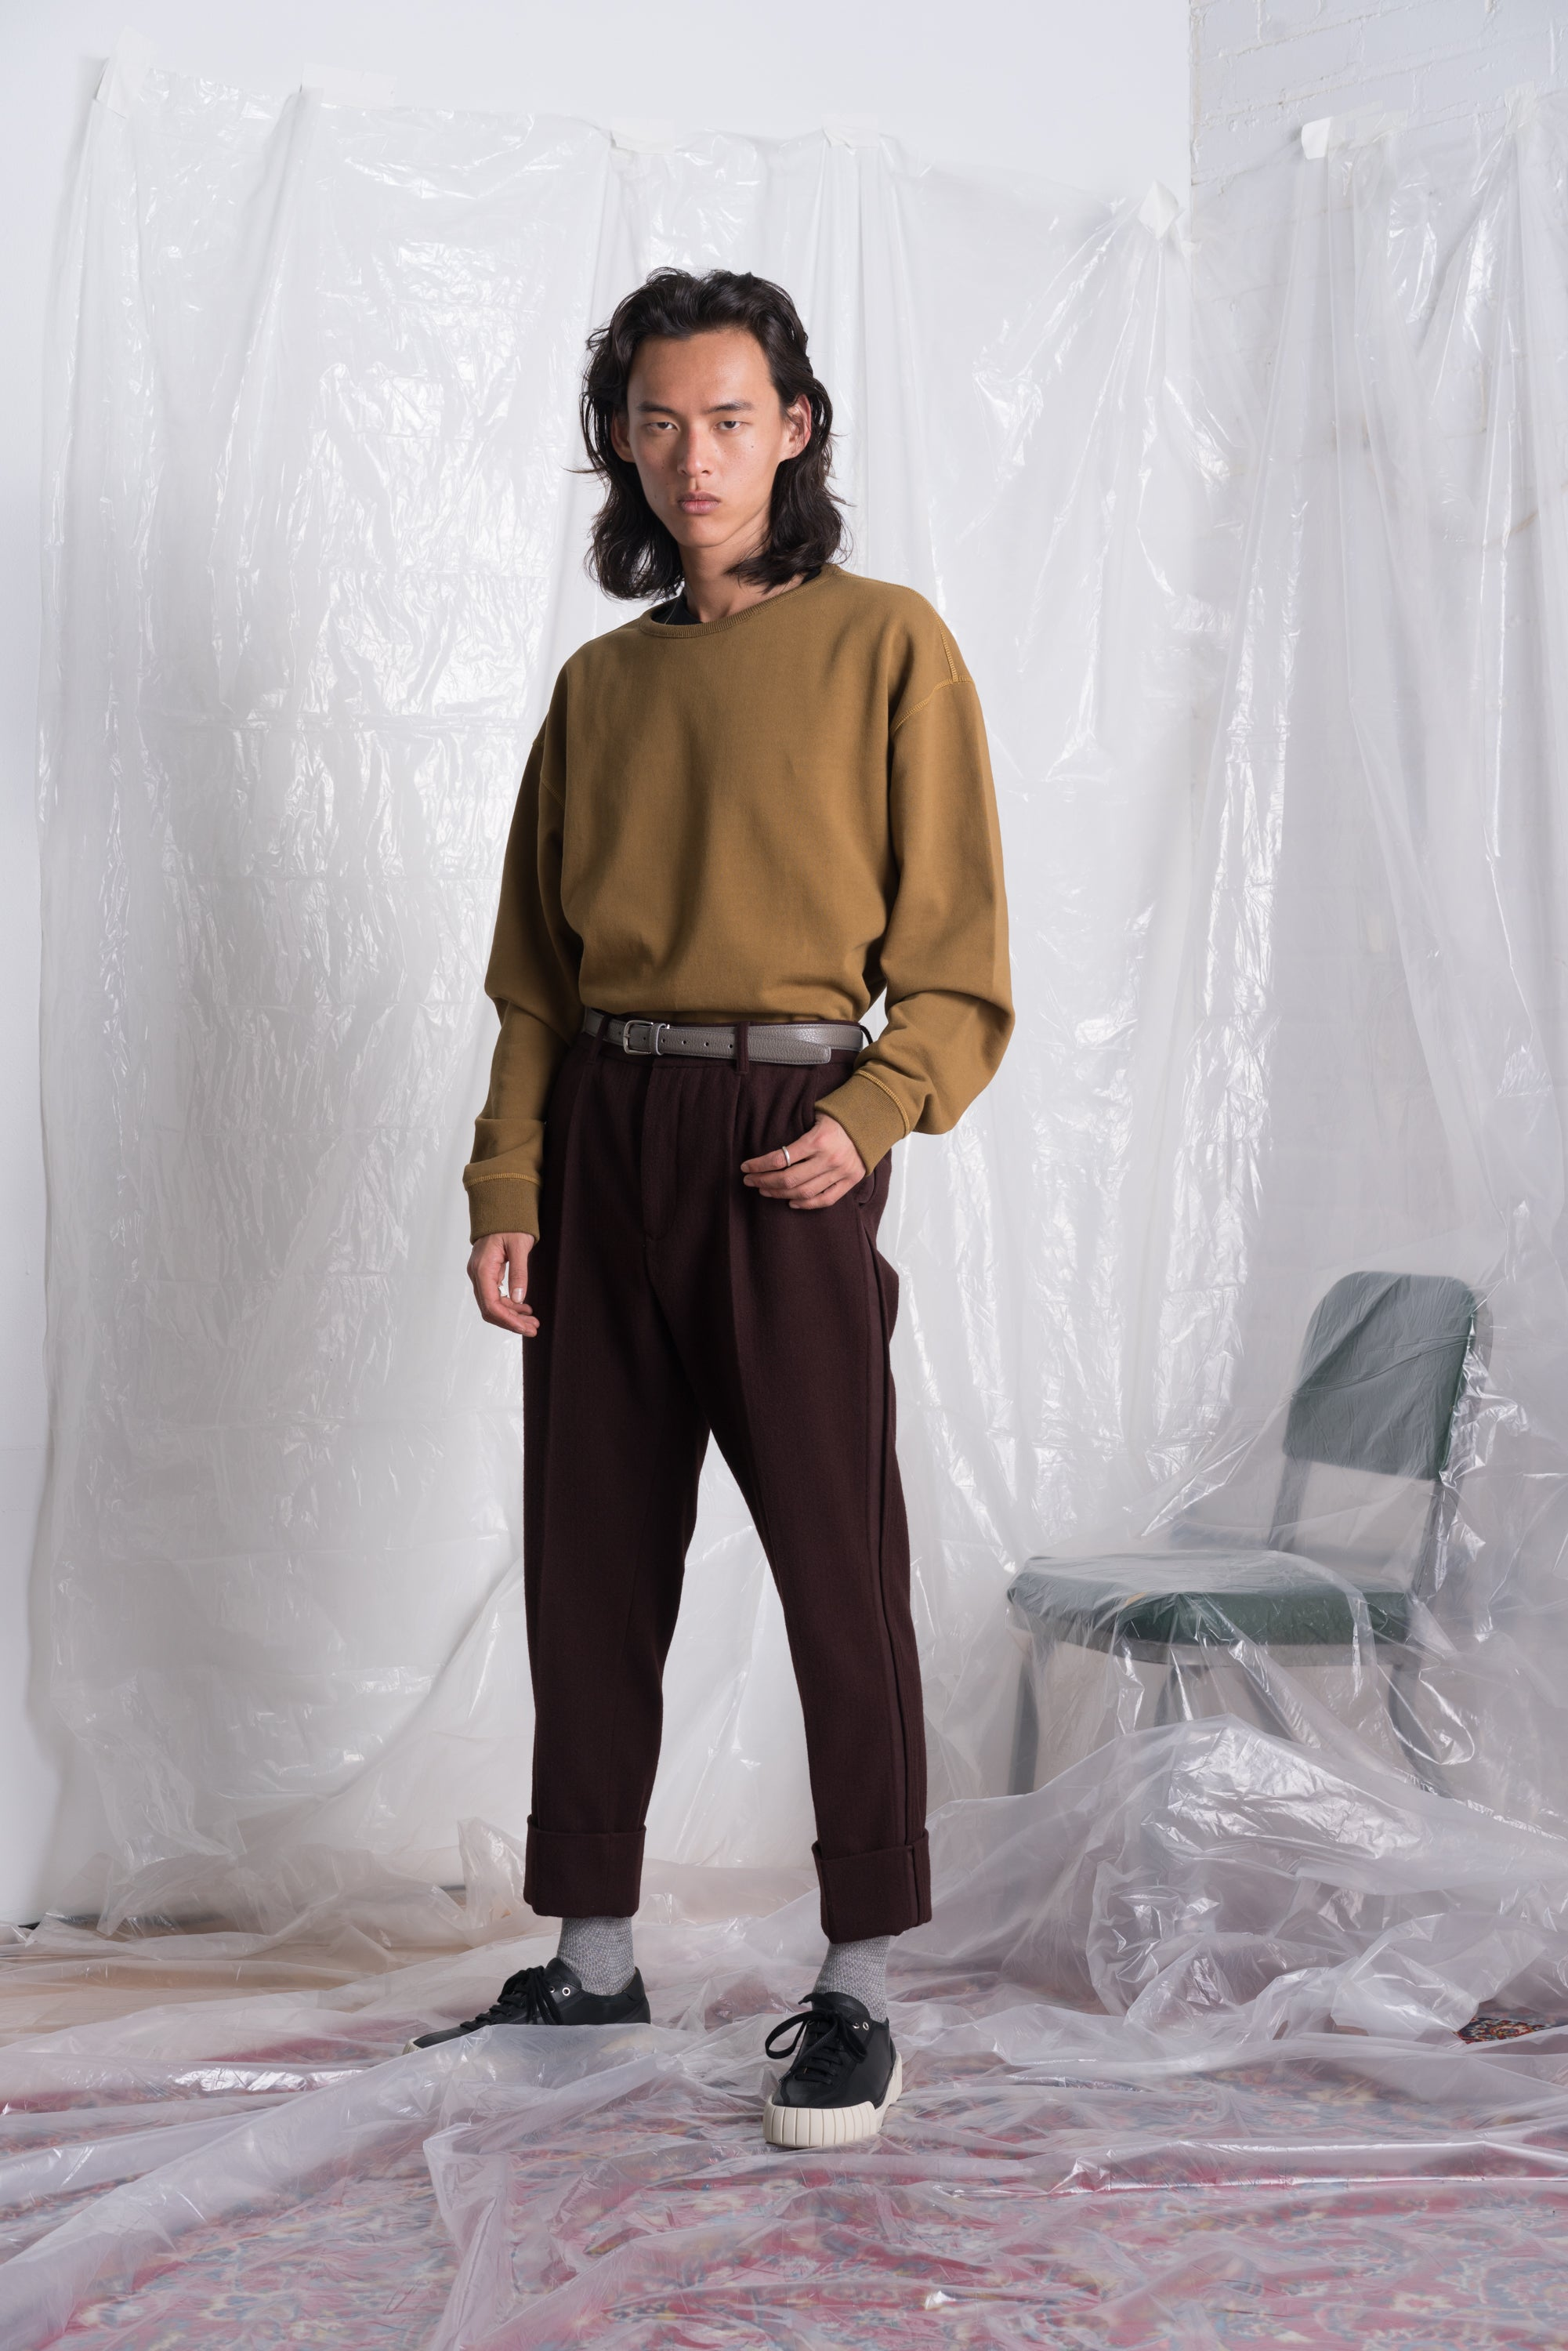 OVERSIZED CREW NECK SWEATER IN HASHISH BROWN  (PRE ORDER)